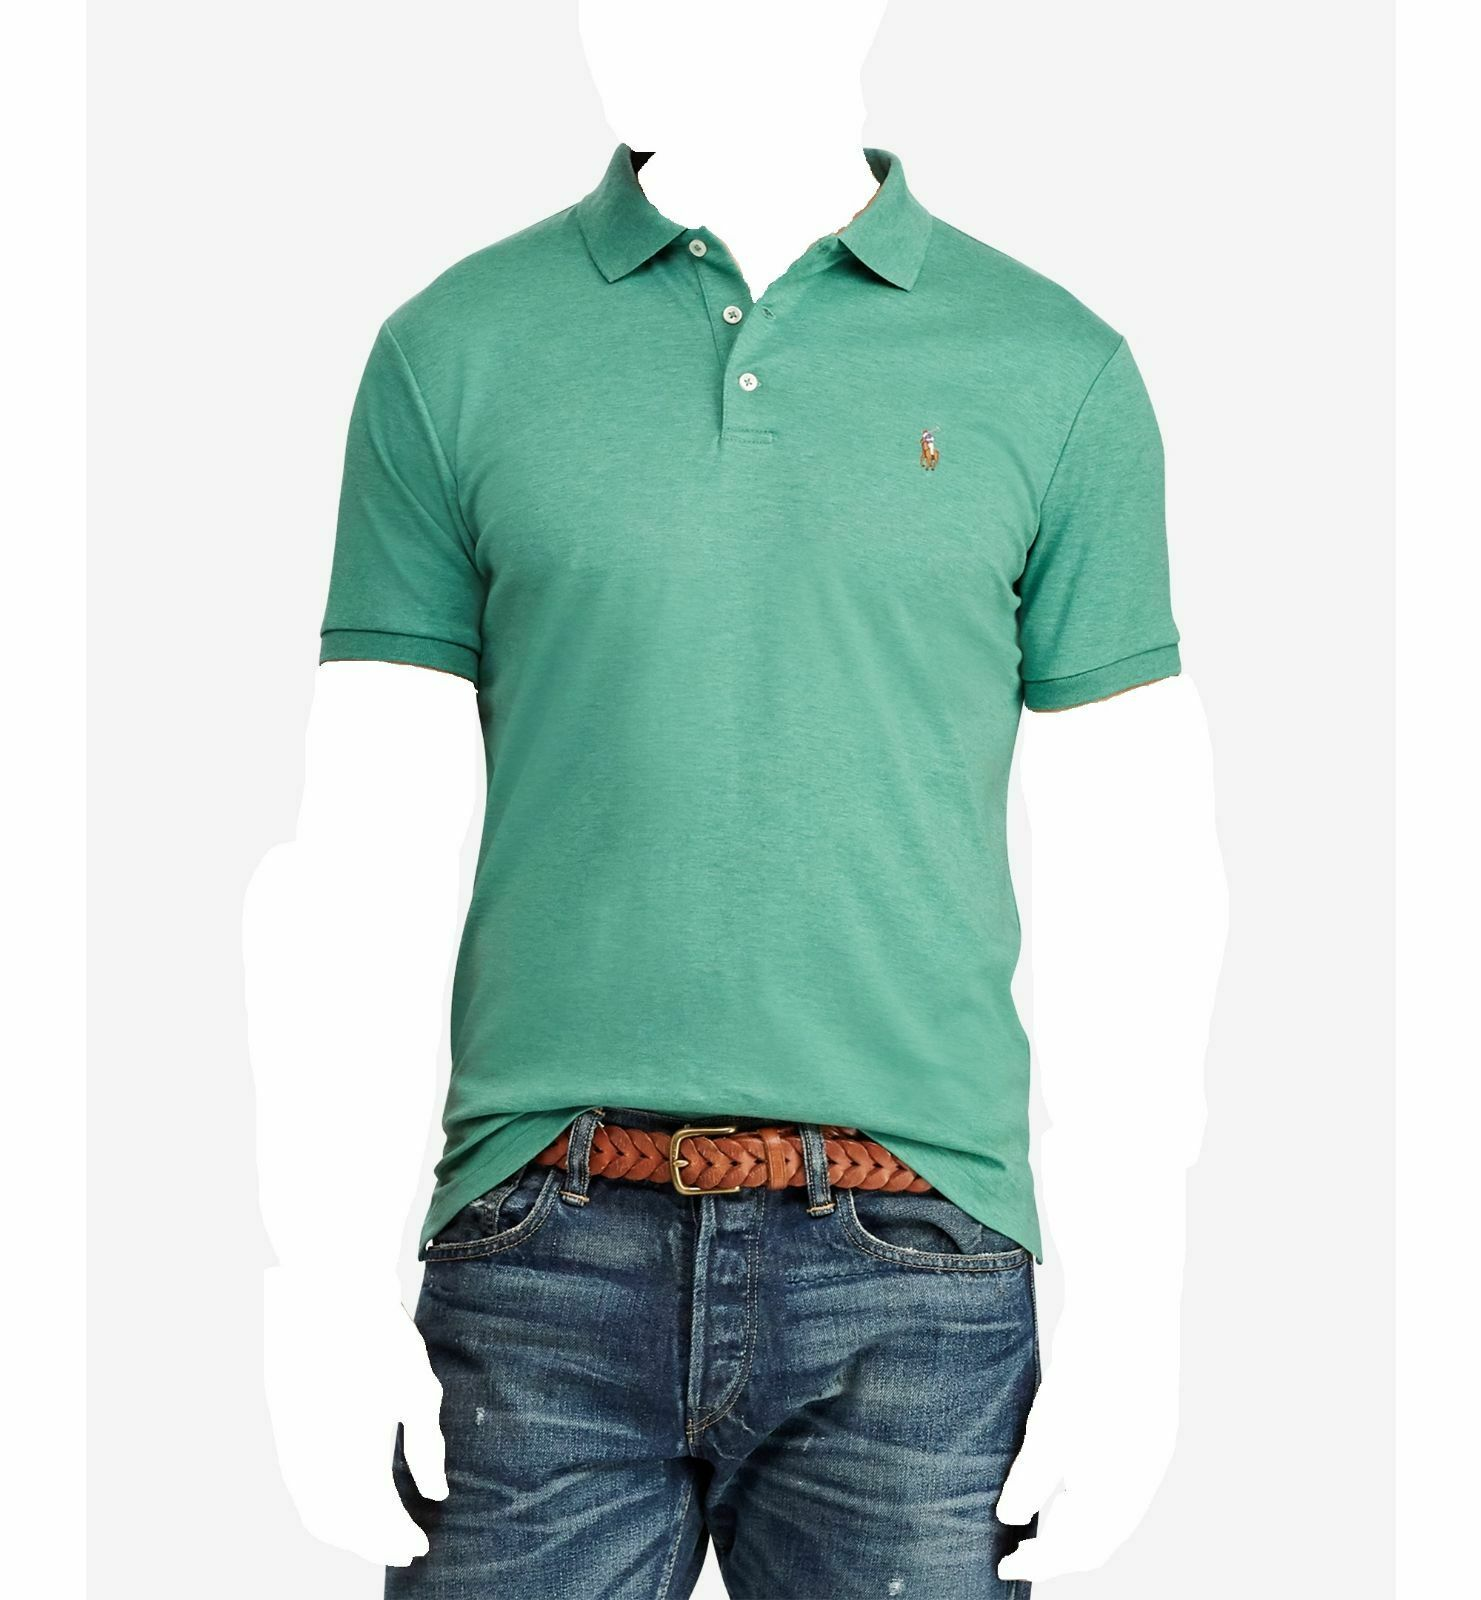 277715da3 POLO RALPH LAUREN Mens CLASSIC FIT GREEN SHORT SLEEVE PONY LOGO TOP SHIRT L